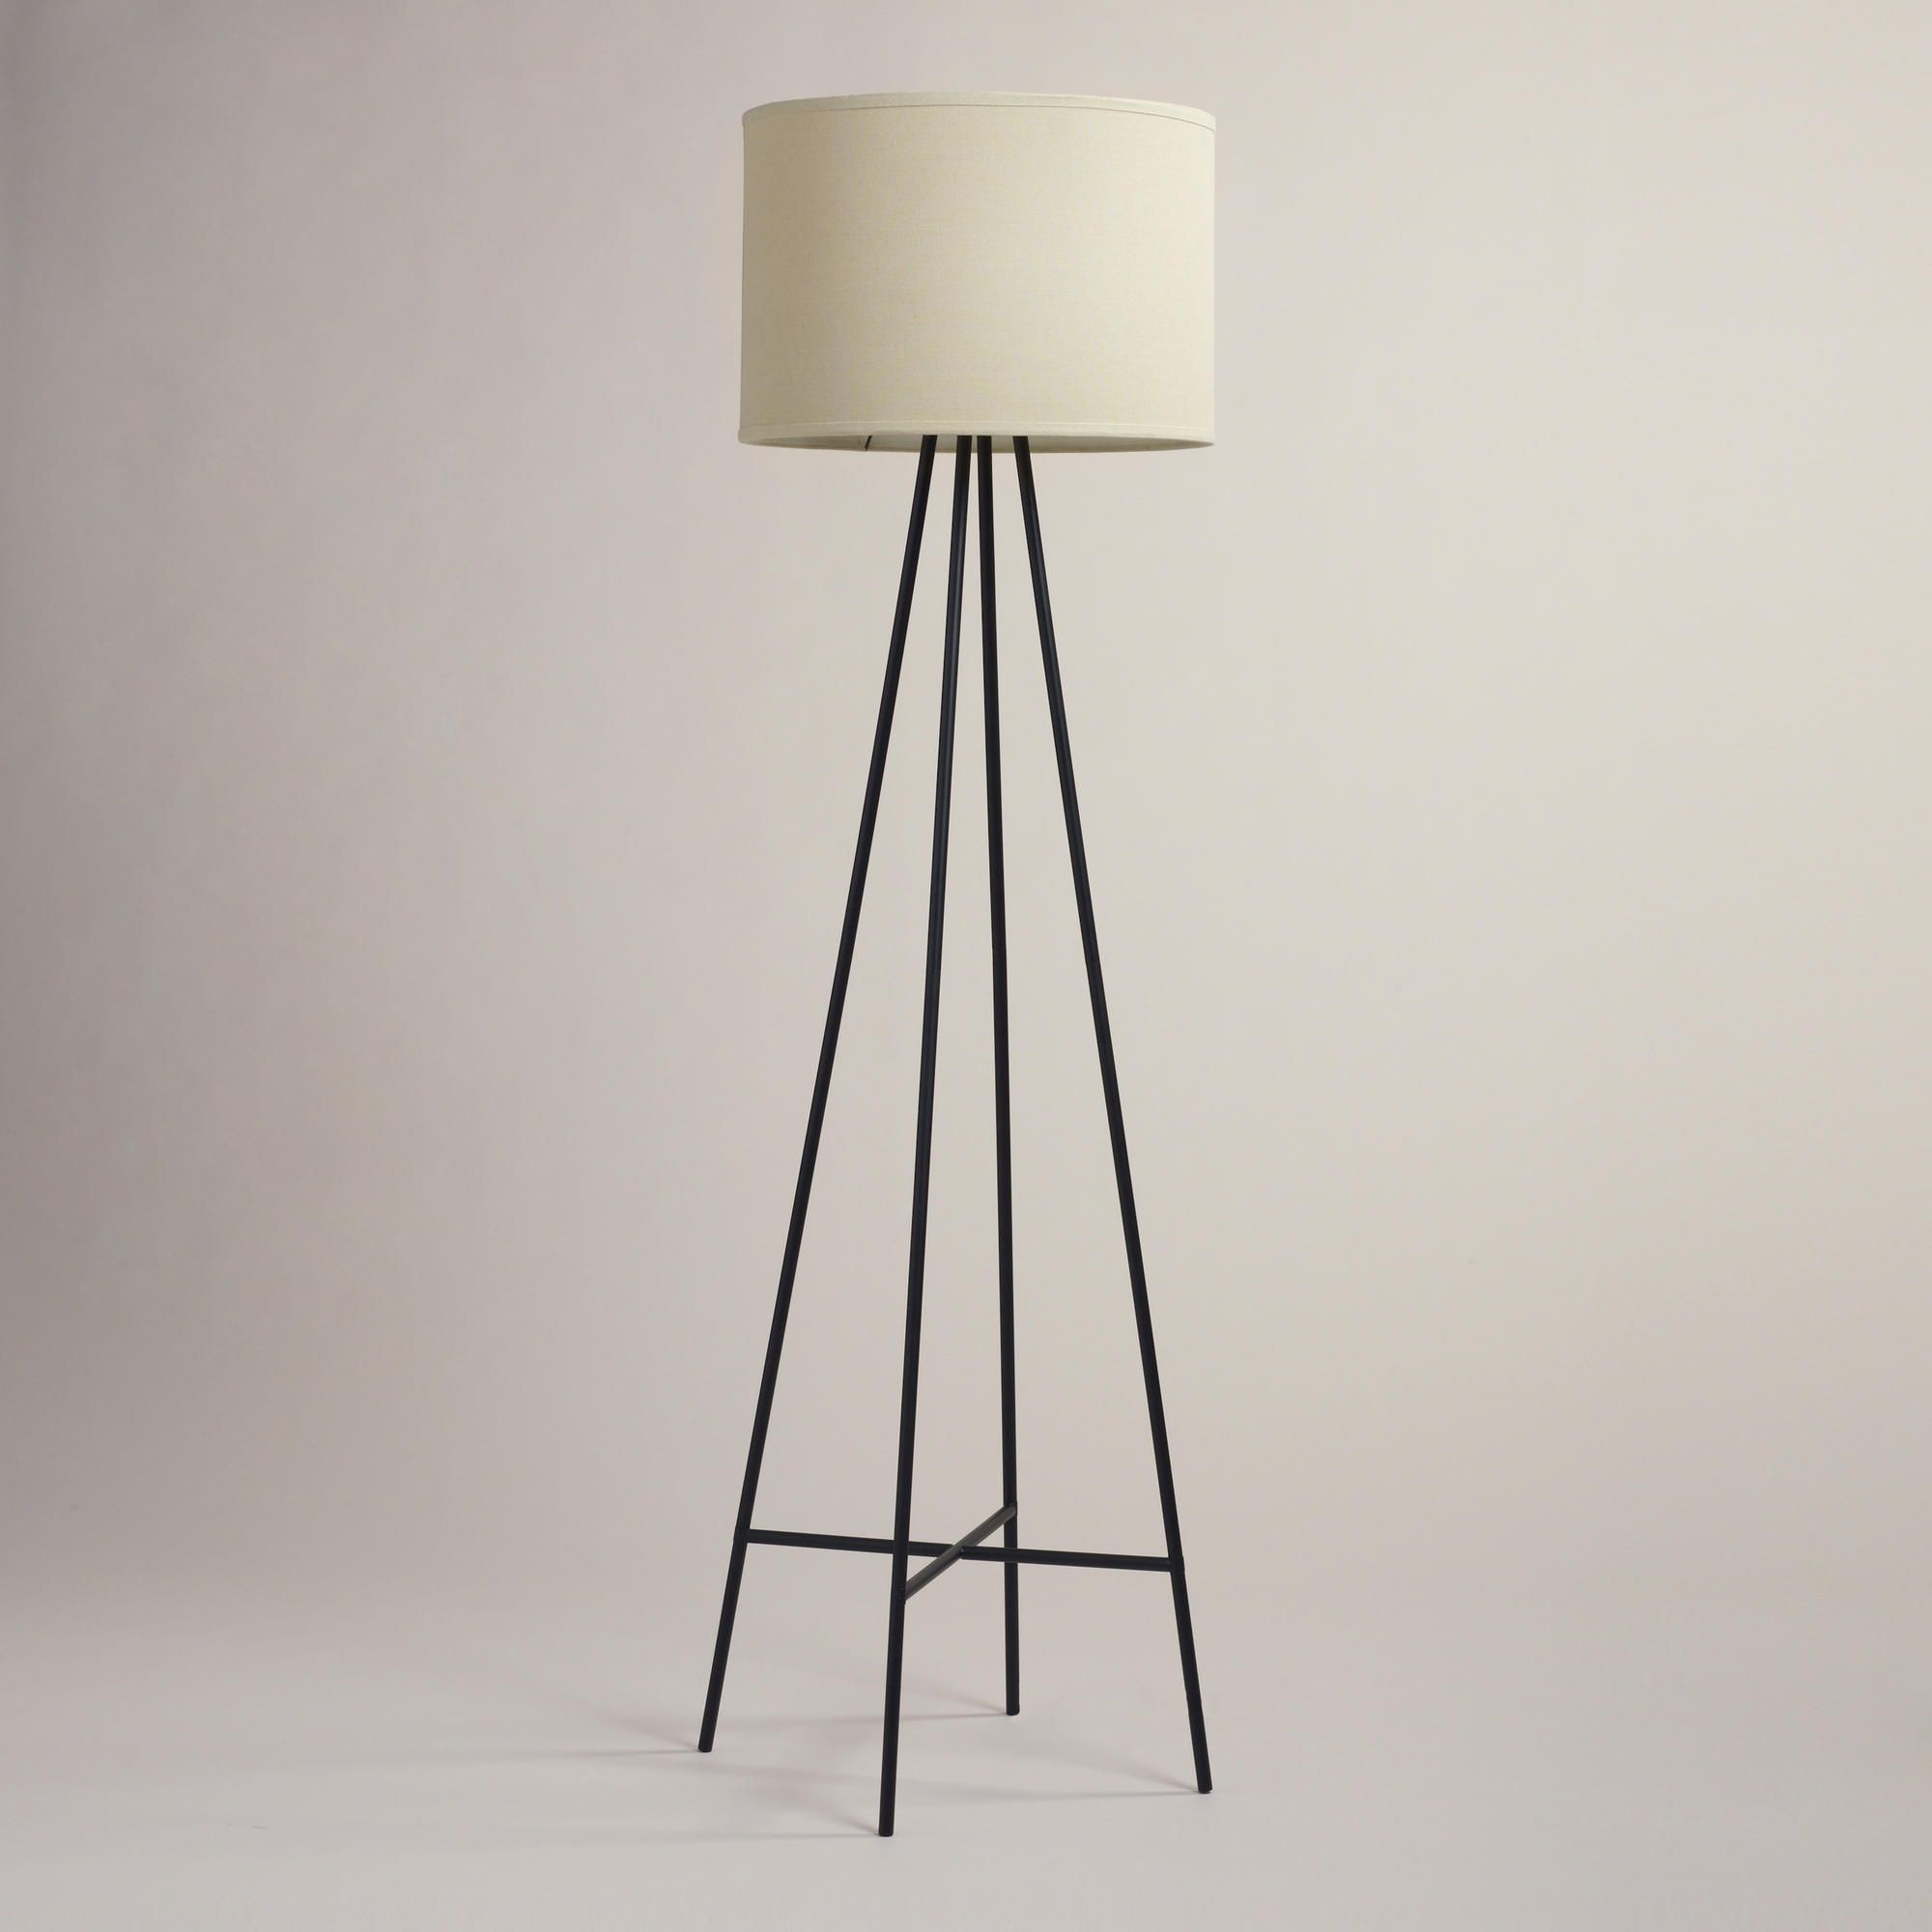 Tristan Floor Lamp Stand 72 Shade Solde Separately One Thing I Wiring A Wooden Dislike About